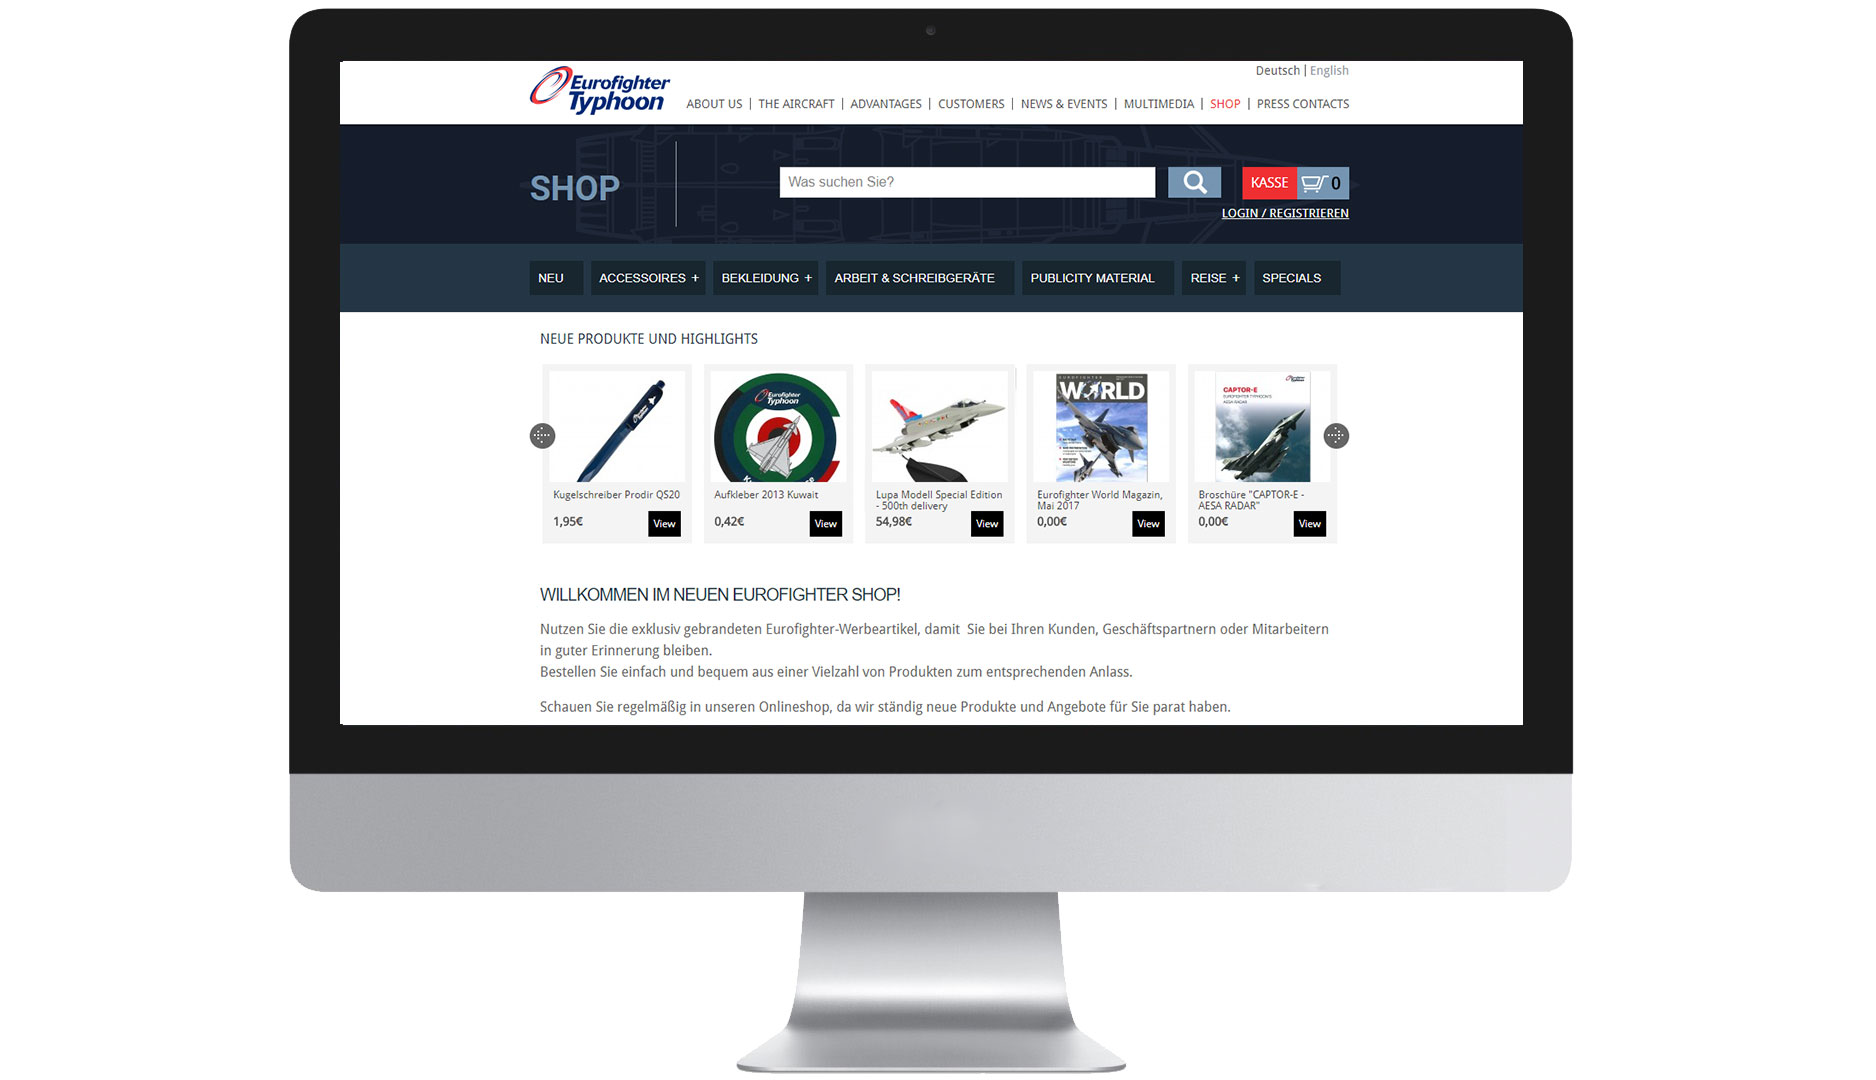 EIDEX Shopsysteme Eurofighter Typhoon